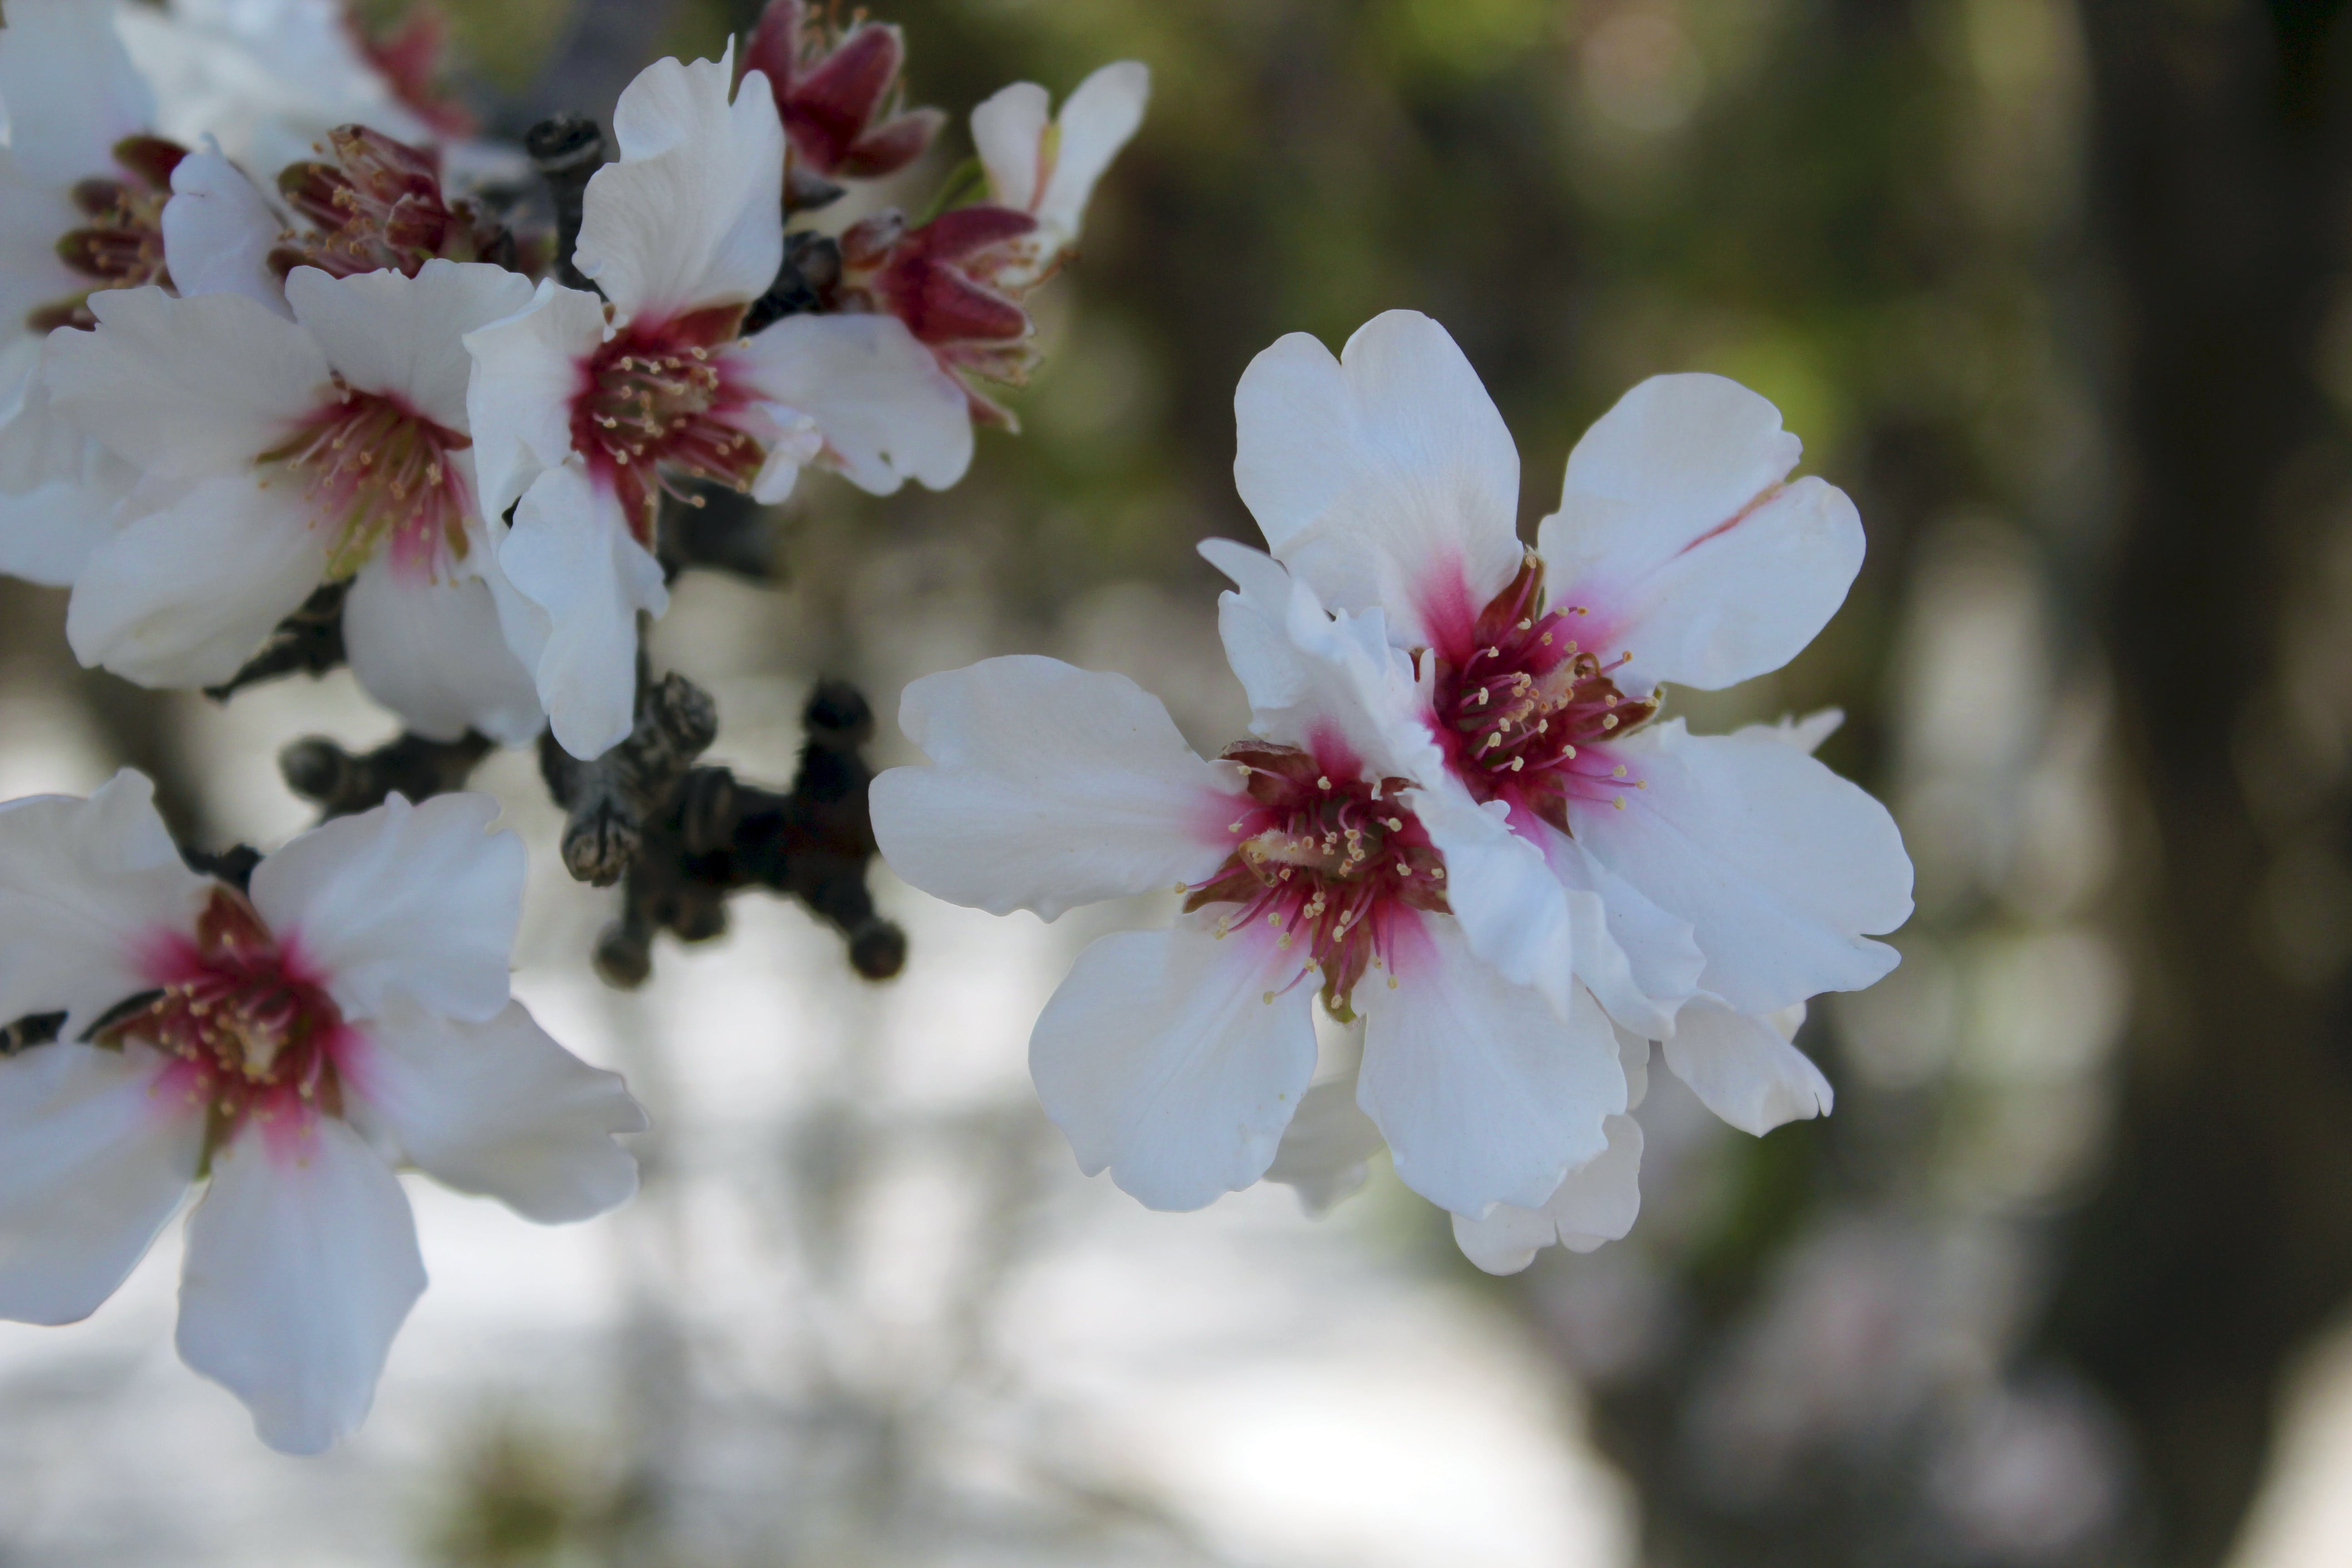 Free stock photo of flowers, cherry blossoms